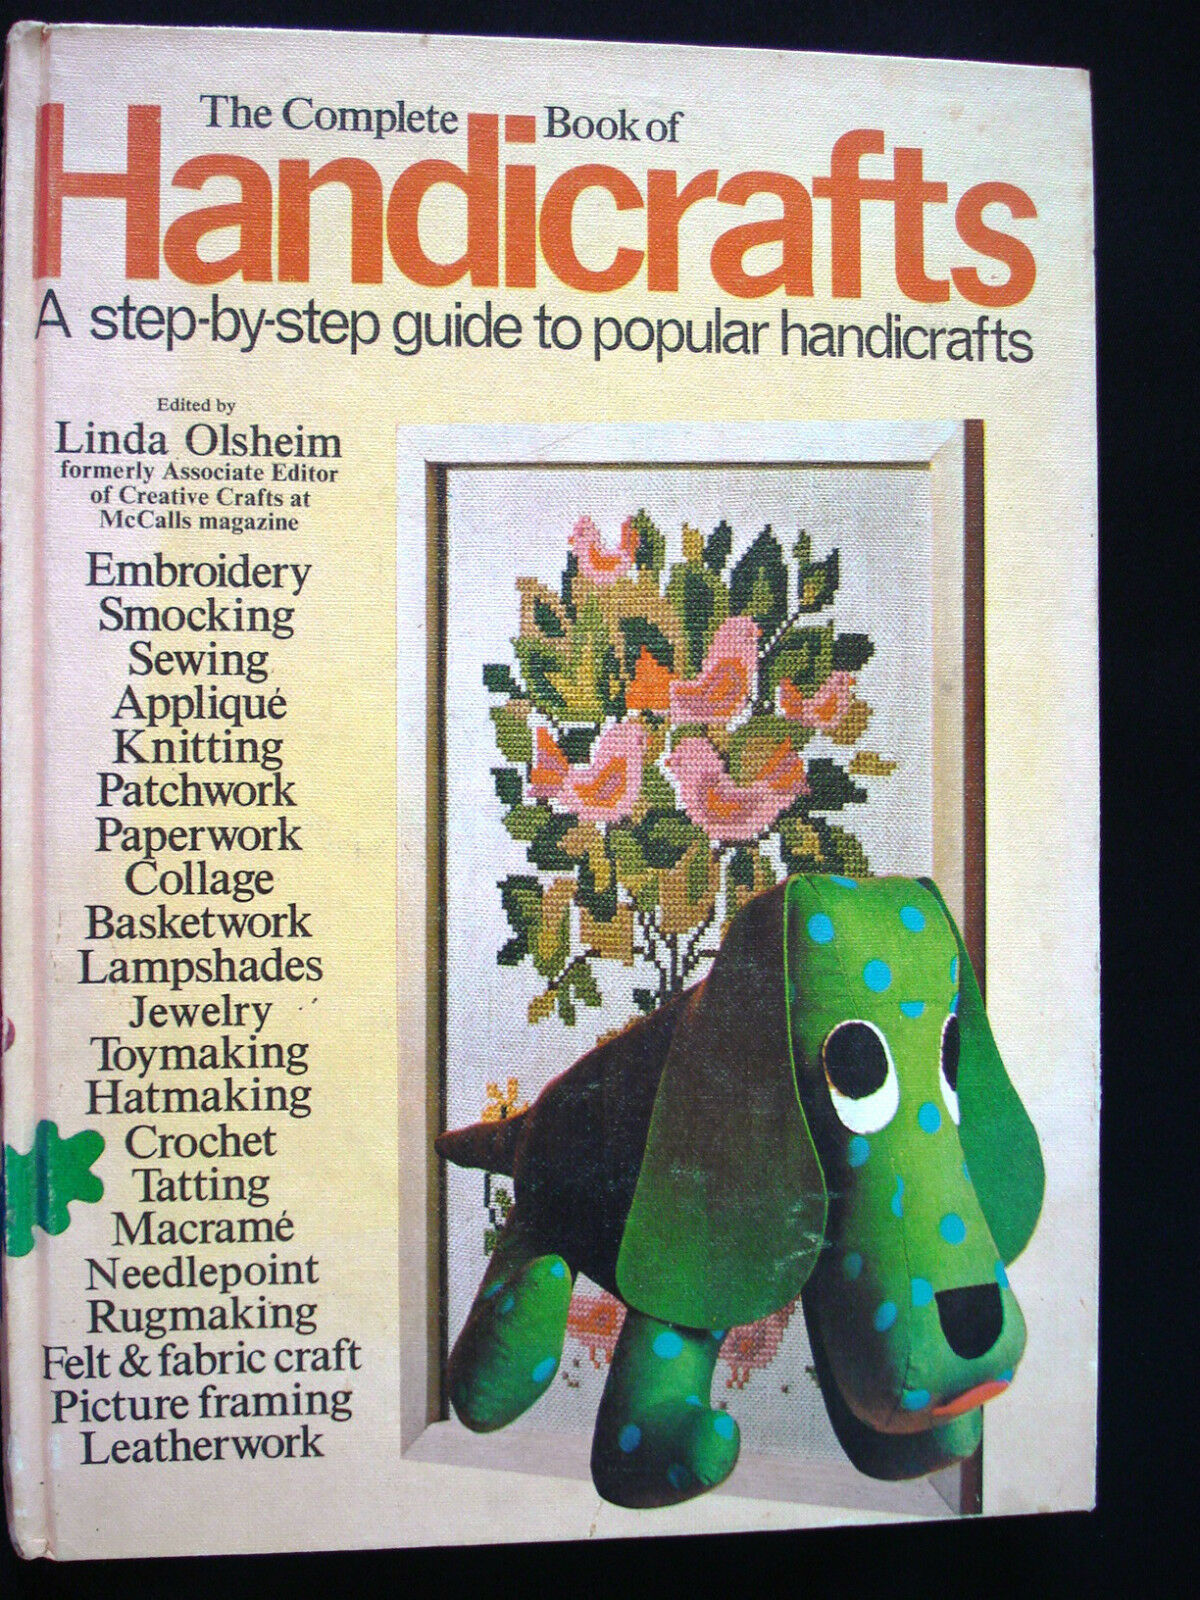 1973 The Complete Book of Handicrafts by Linda Olsheim Book |